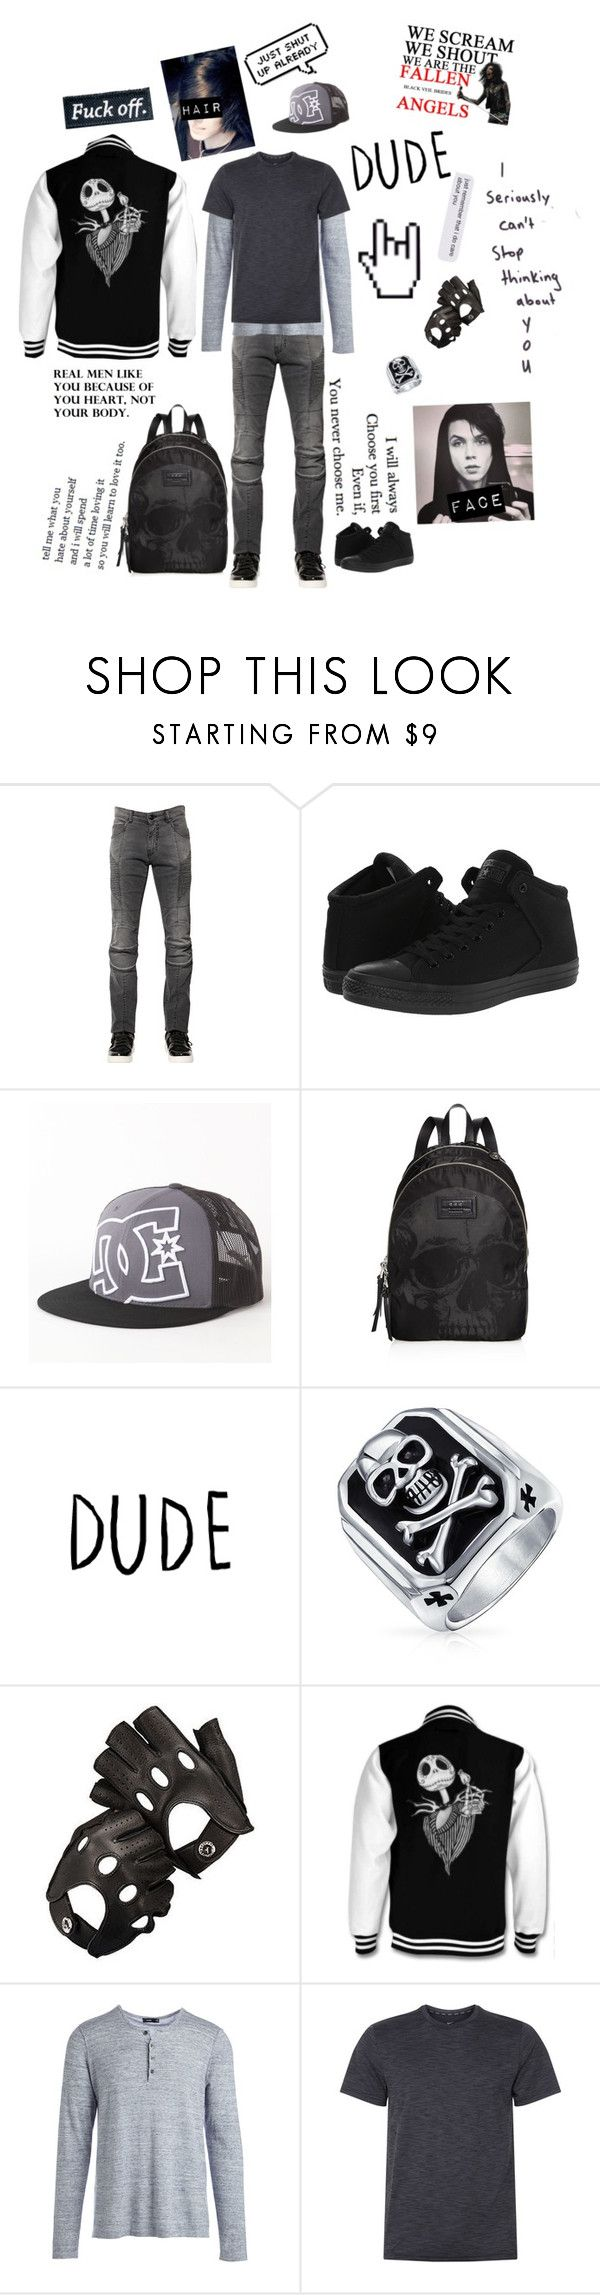 """Untitled #42"" by literaldisaster ❤ liked on Polyvore featuring Pierre Balmain, Converse, DC Shoes, John Varvatos * U.S.A., Bling Jewelry, Aspinal of London, Vince, NIKE, men's fashion and menswear"